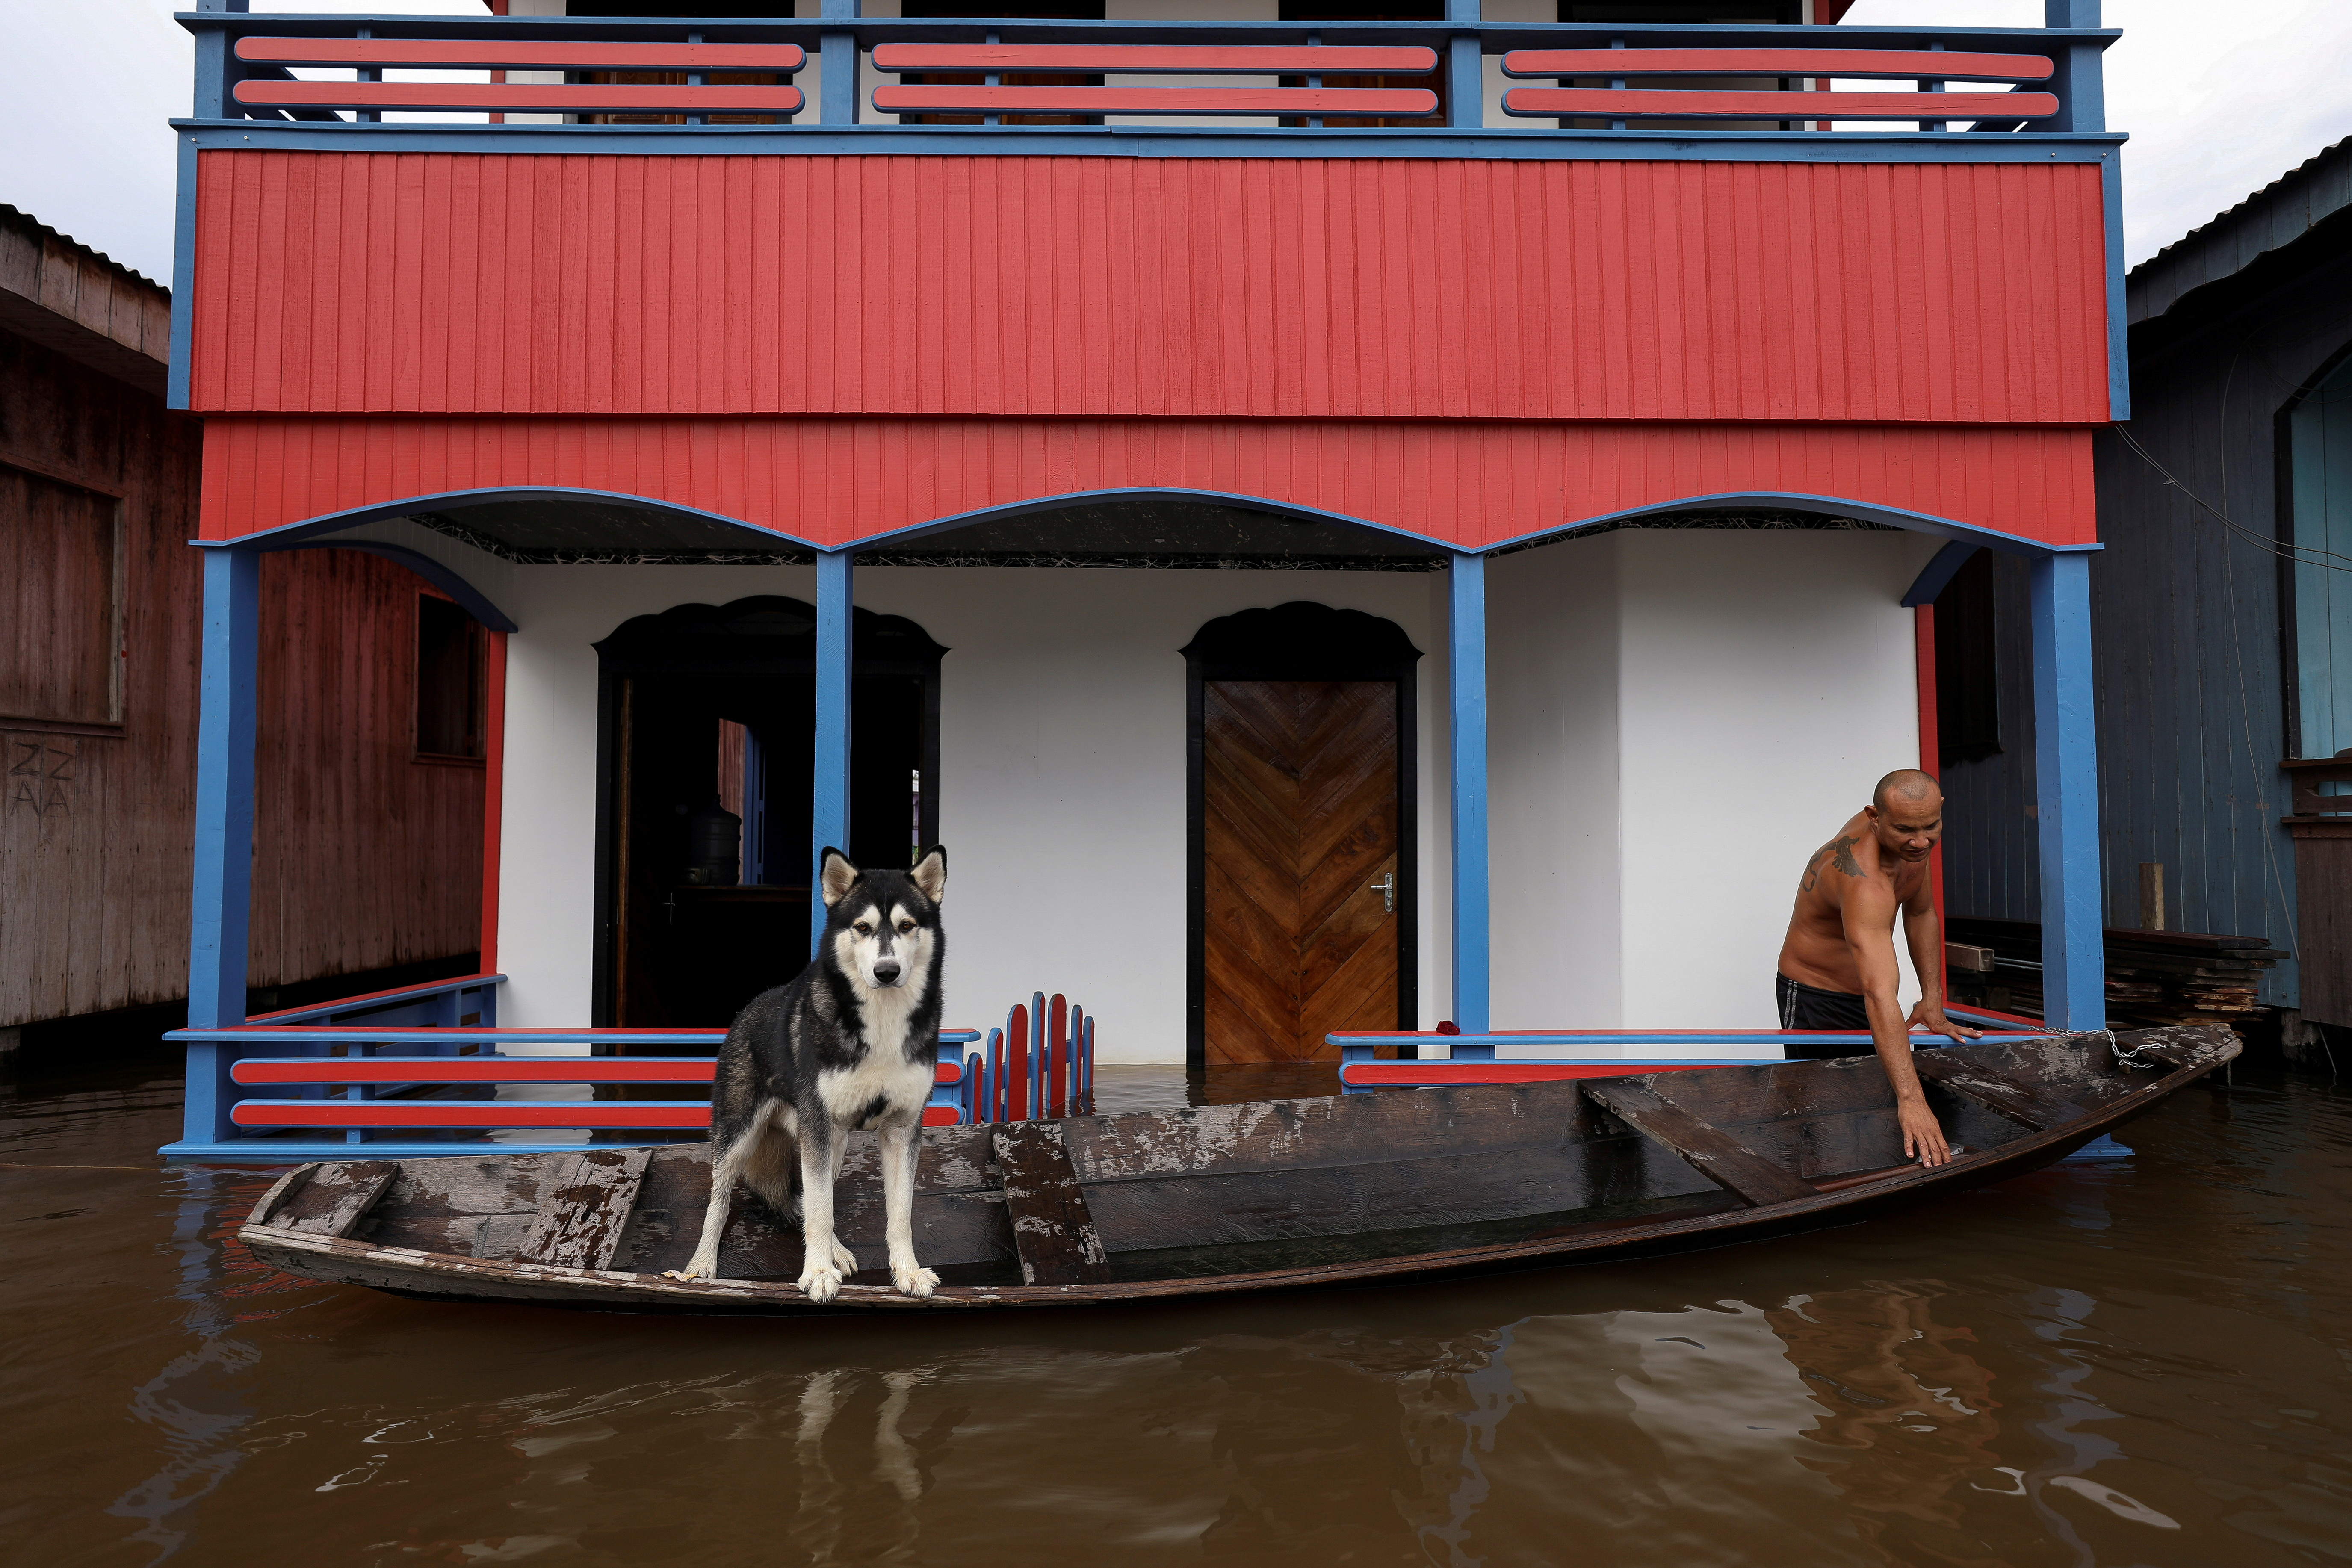 A man prepares his canoe next to his dog on a street flooded by the rising Solimoes river, one of the two main branches of the Amazon River, in Anama, Amazonas state, Brazil May 13, 2021. Picture taken May 13, 2021. REUTERS/Bruno Kelly     TPX IMAGES OF THE DAY